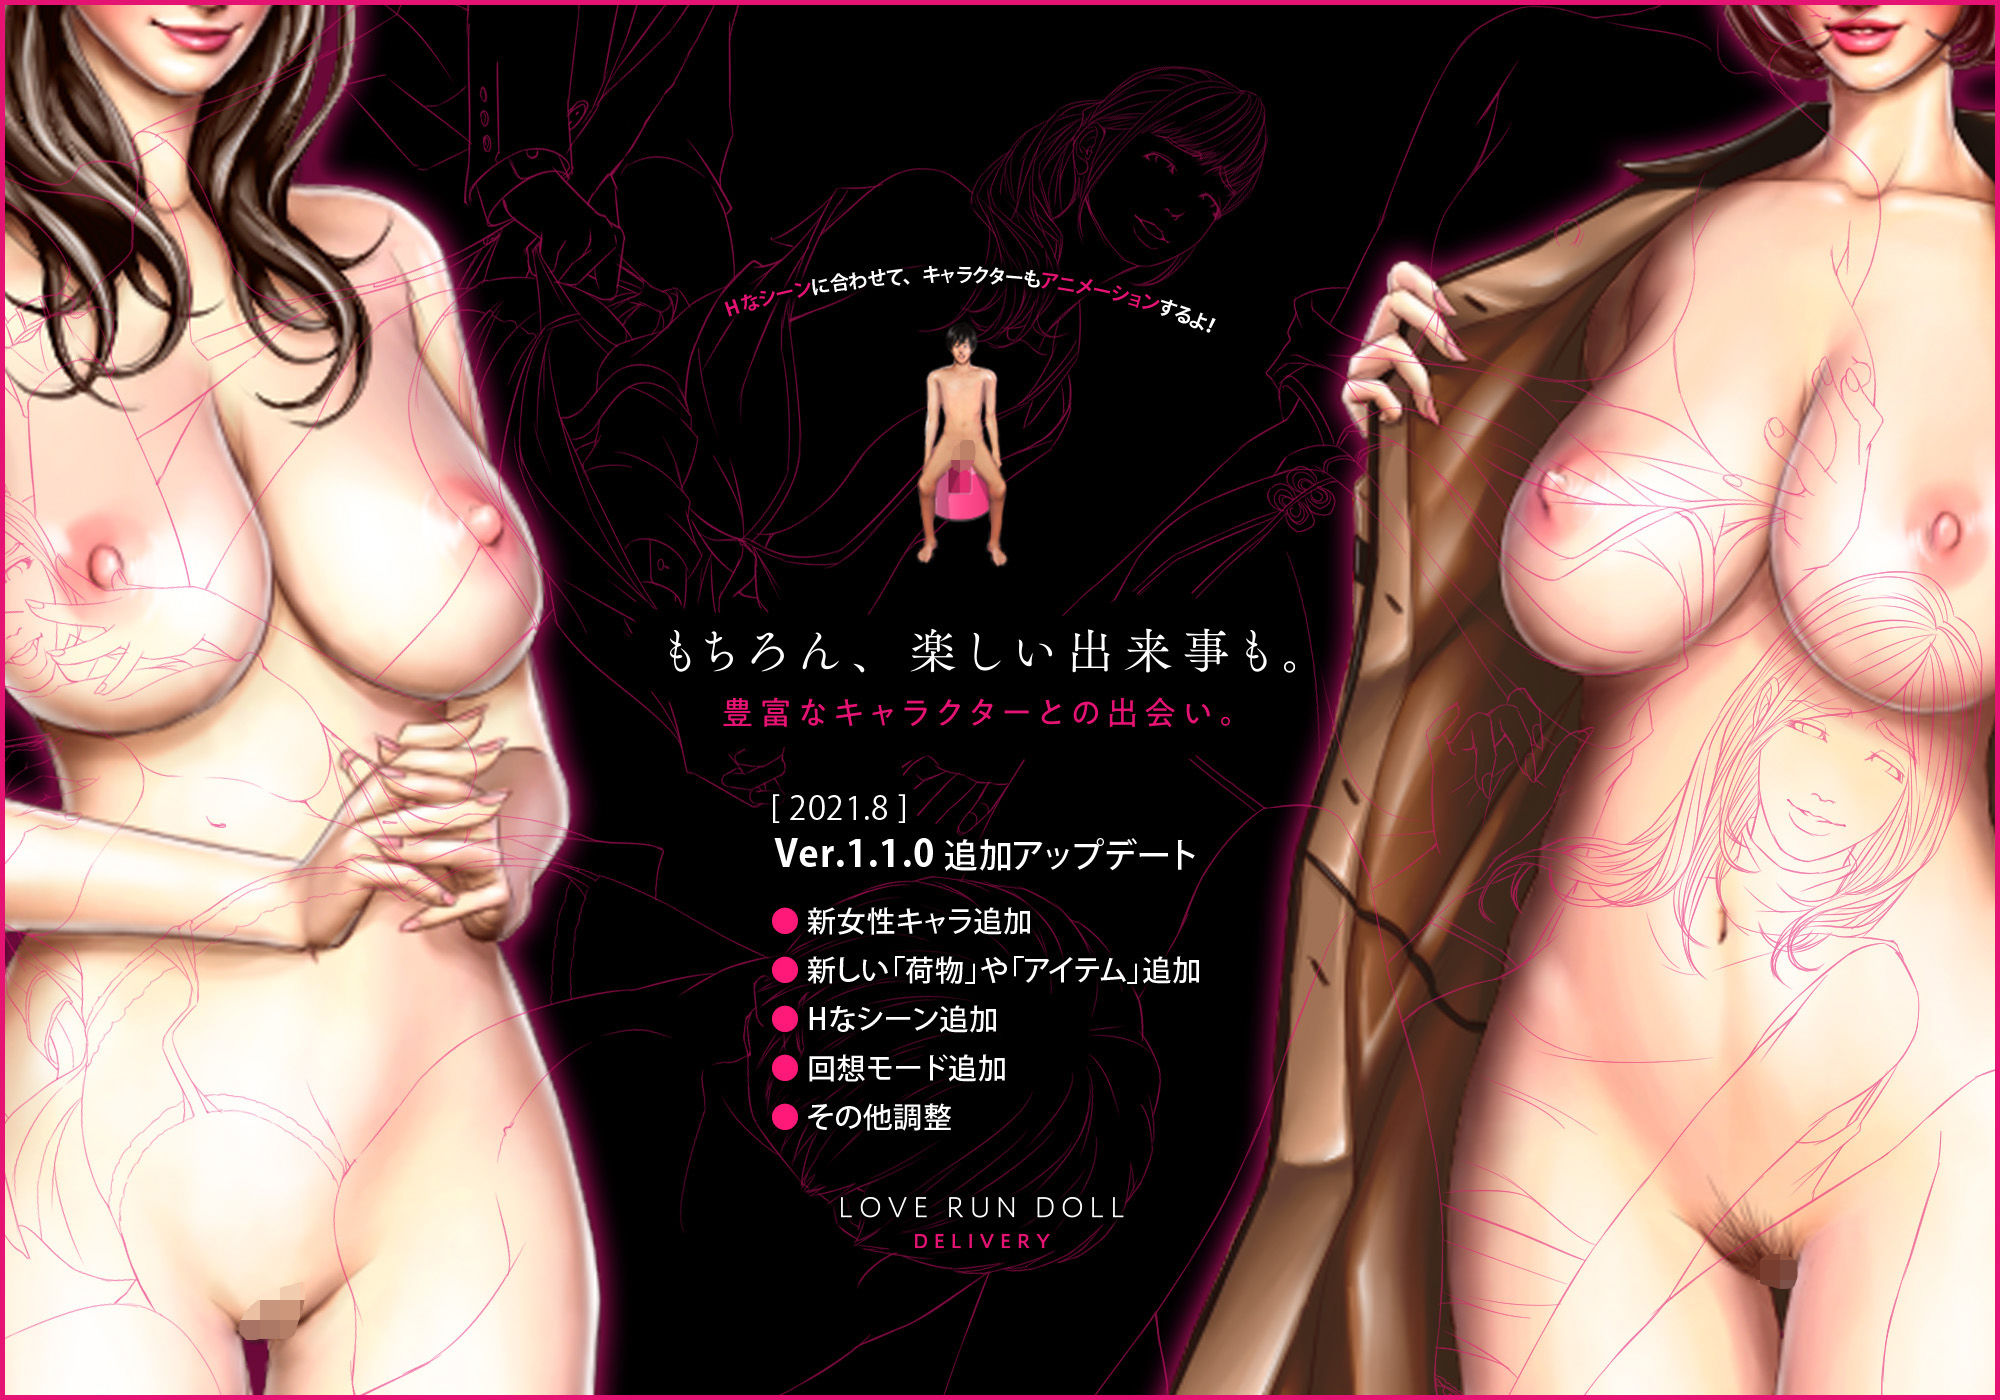 LOVE RUN DOLL DELIVERY 〜性具配達人〜